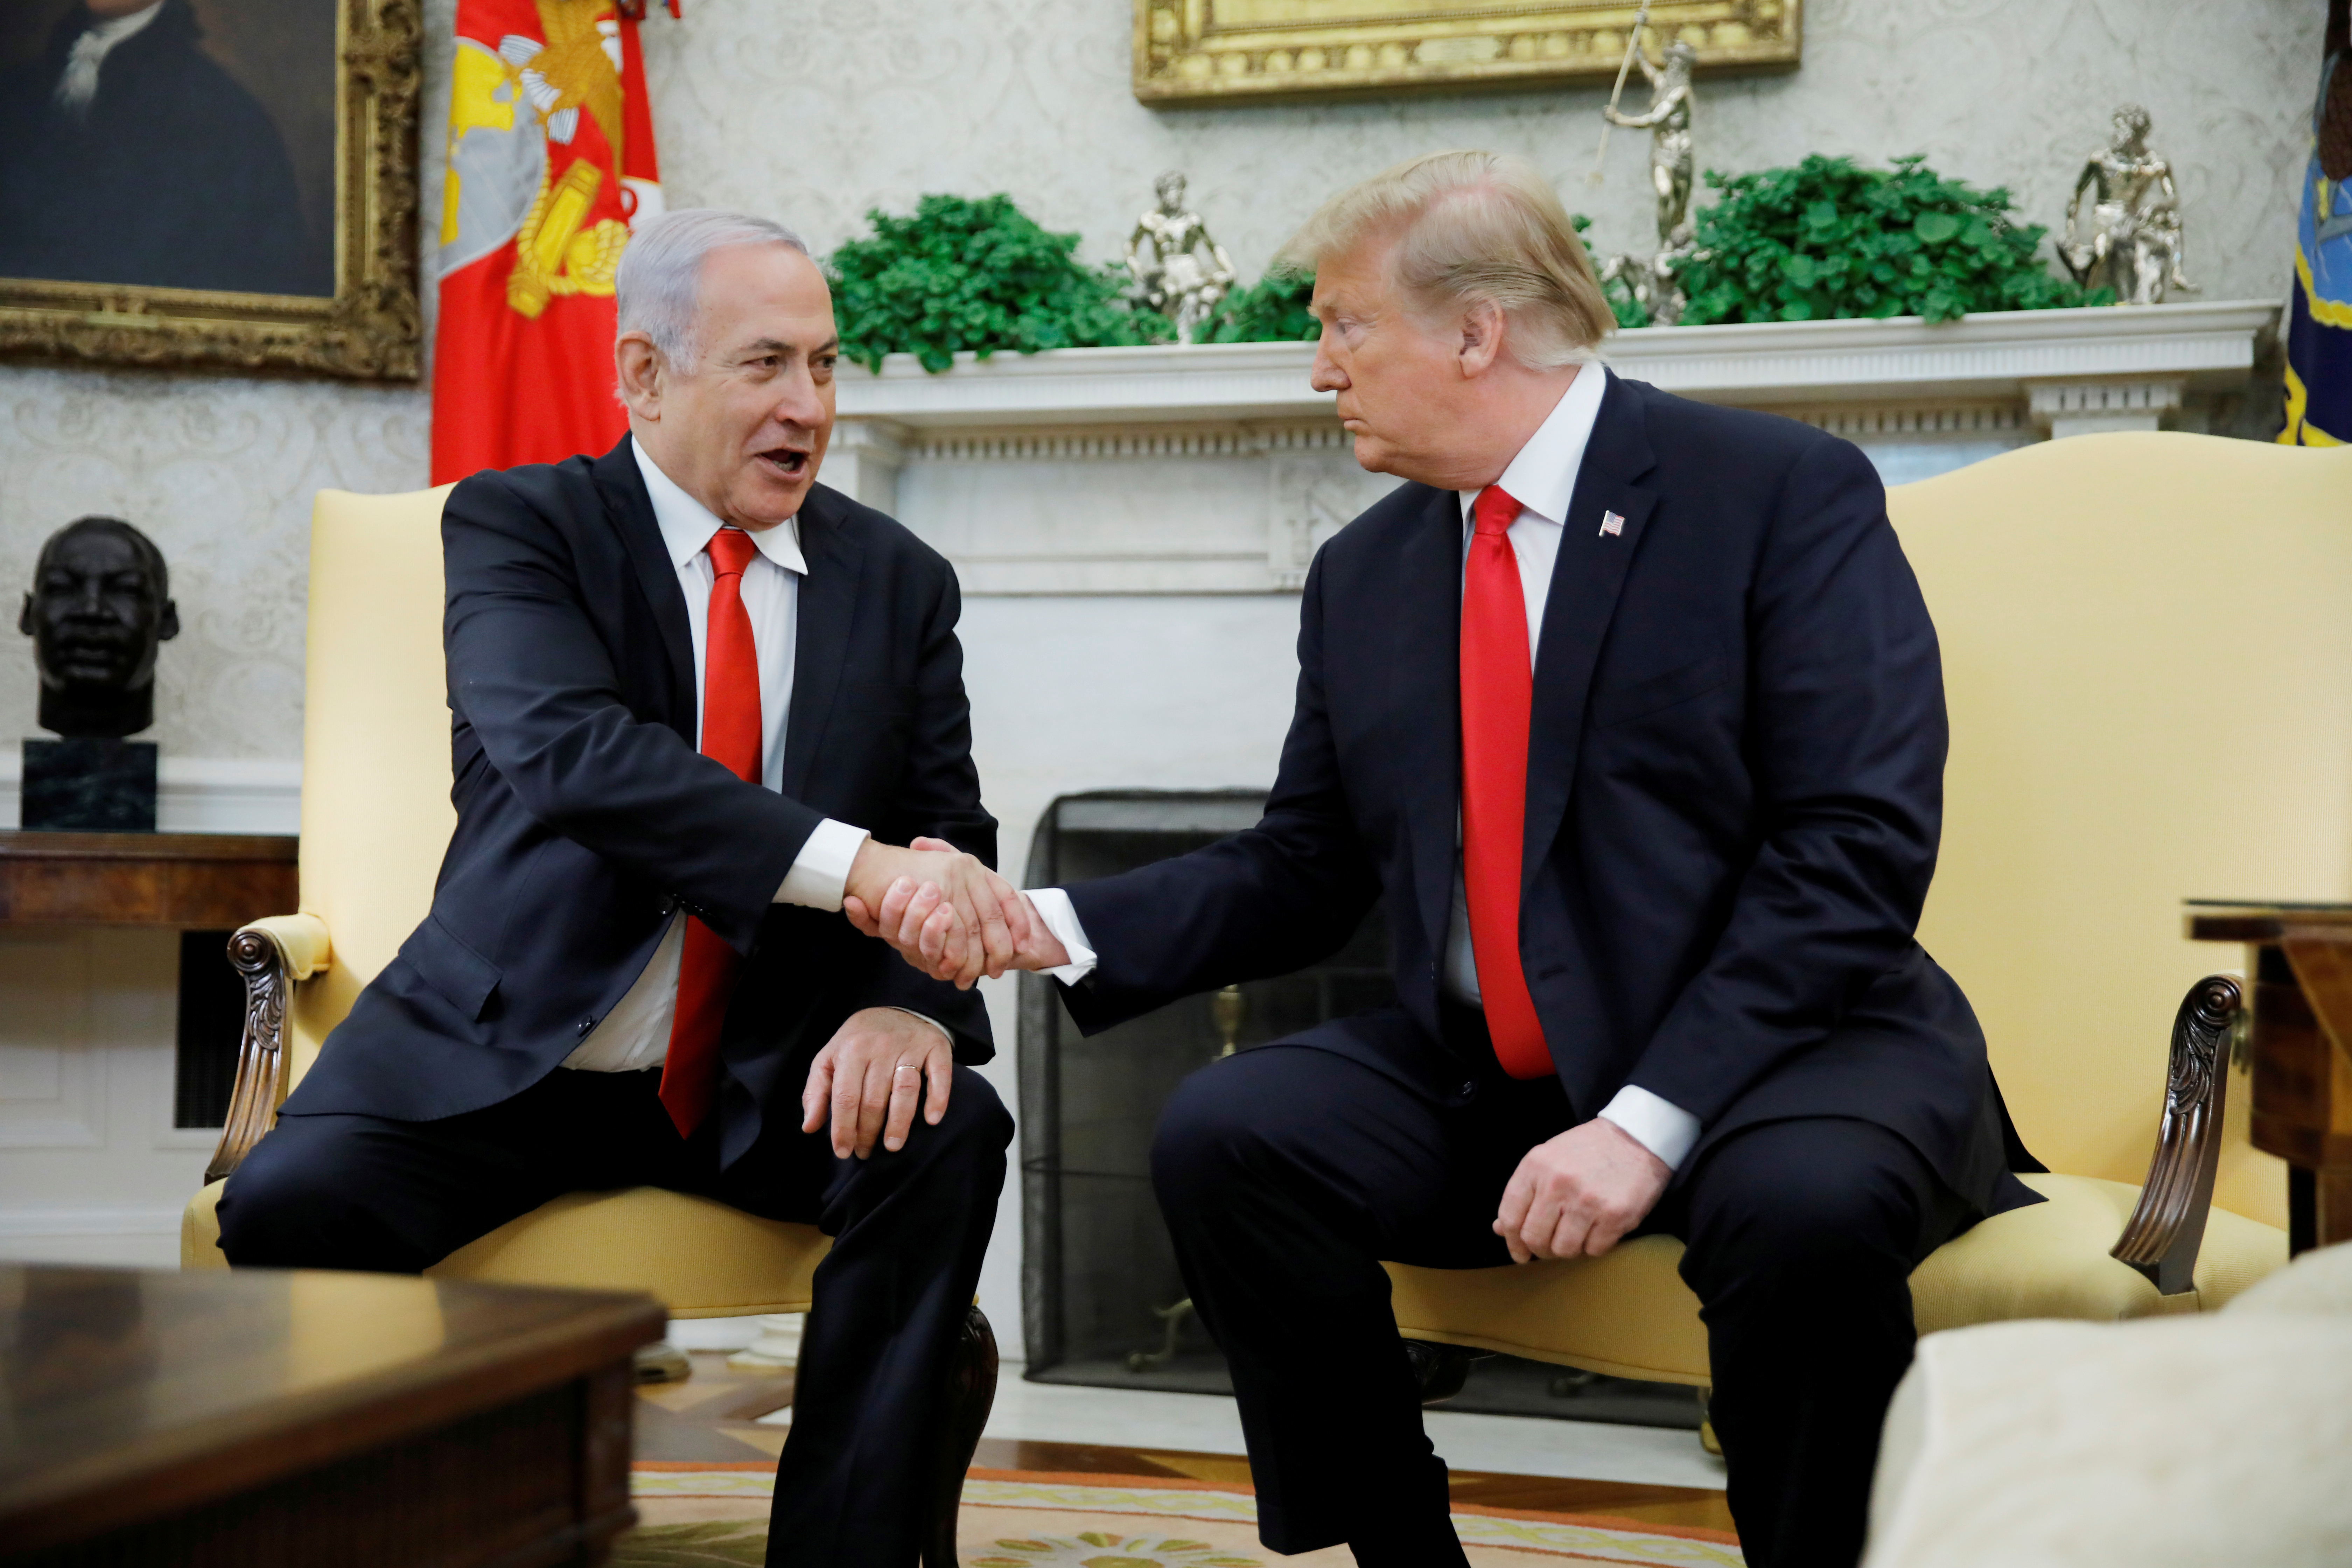 Israel's Prime Minister Benjamin Netanyahu shakes hands with U.S. President Donald Trump during their meeting in the Oval Office at the White House in Washington, U.S., March 25, 2019. REUTERS/Carlos Barria/File Photo